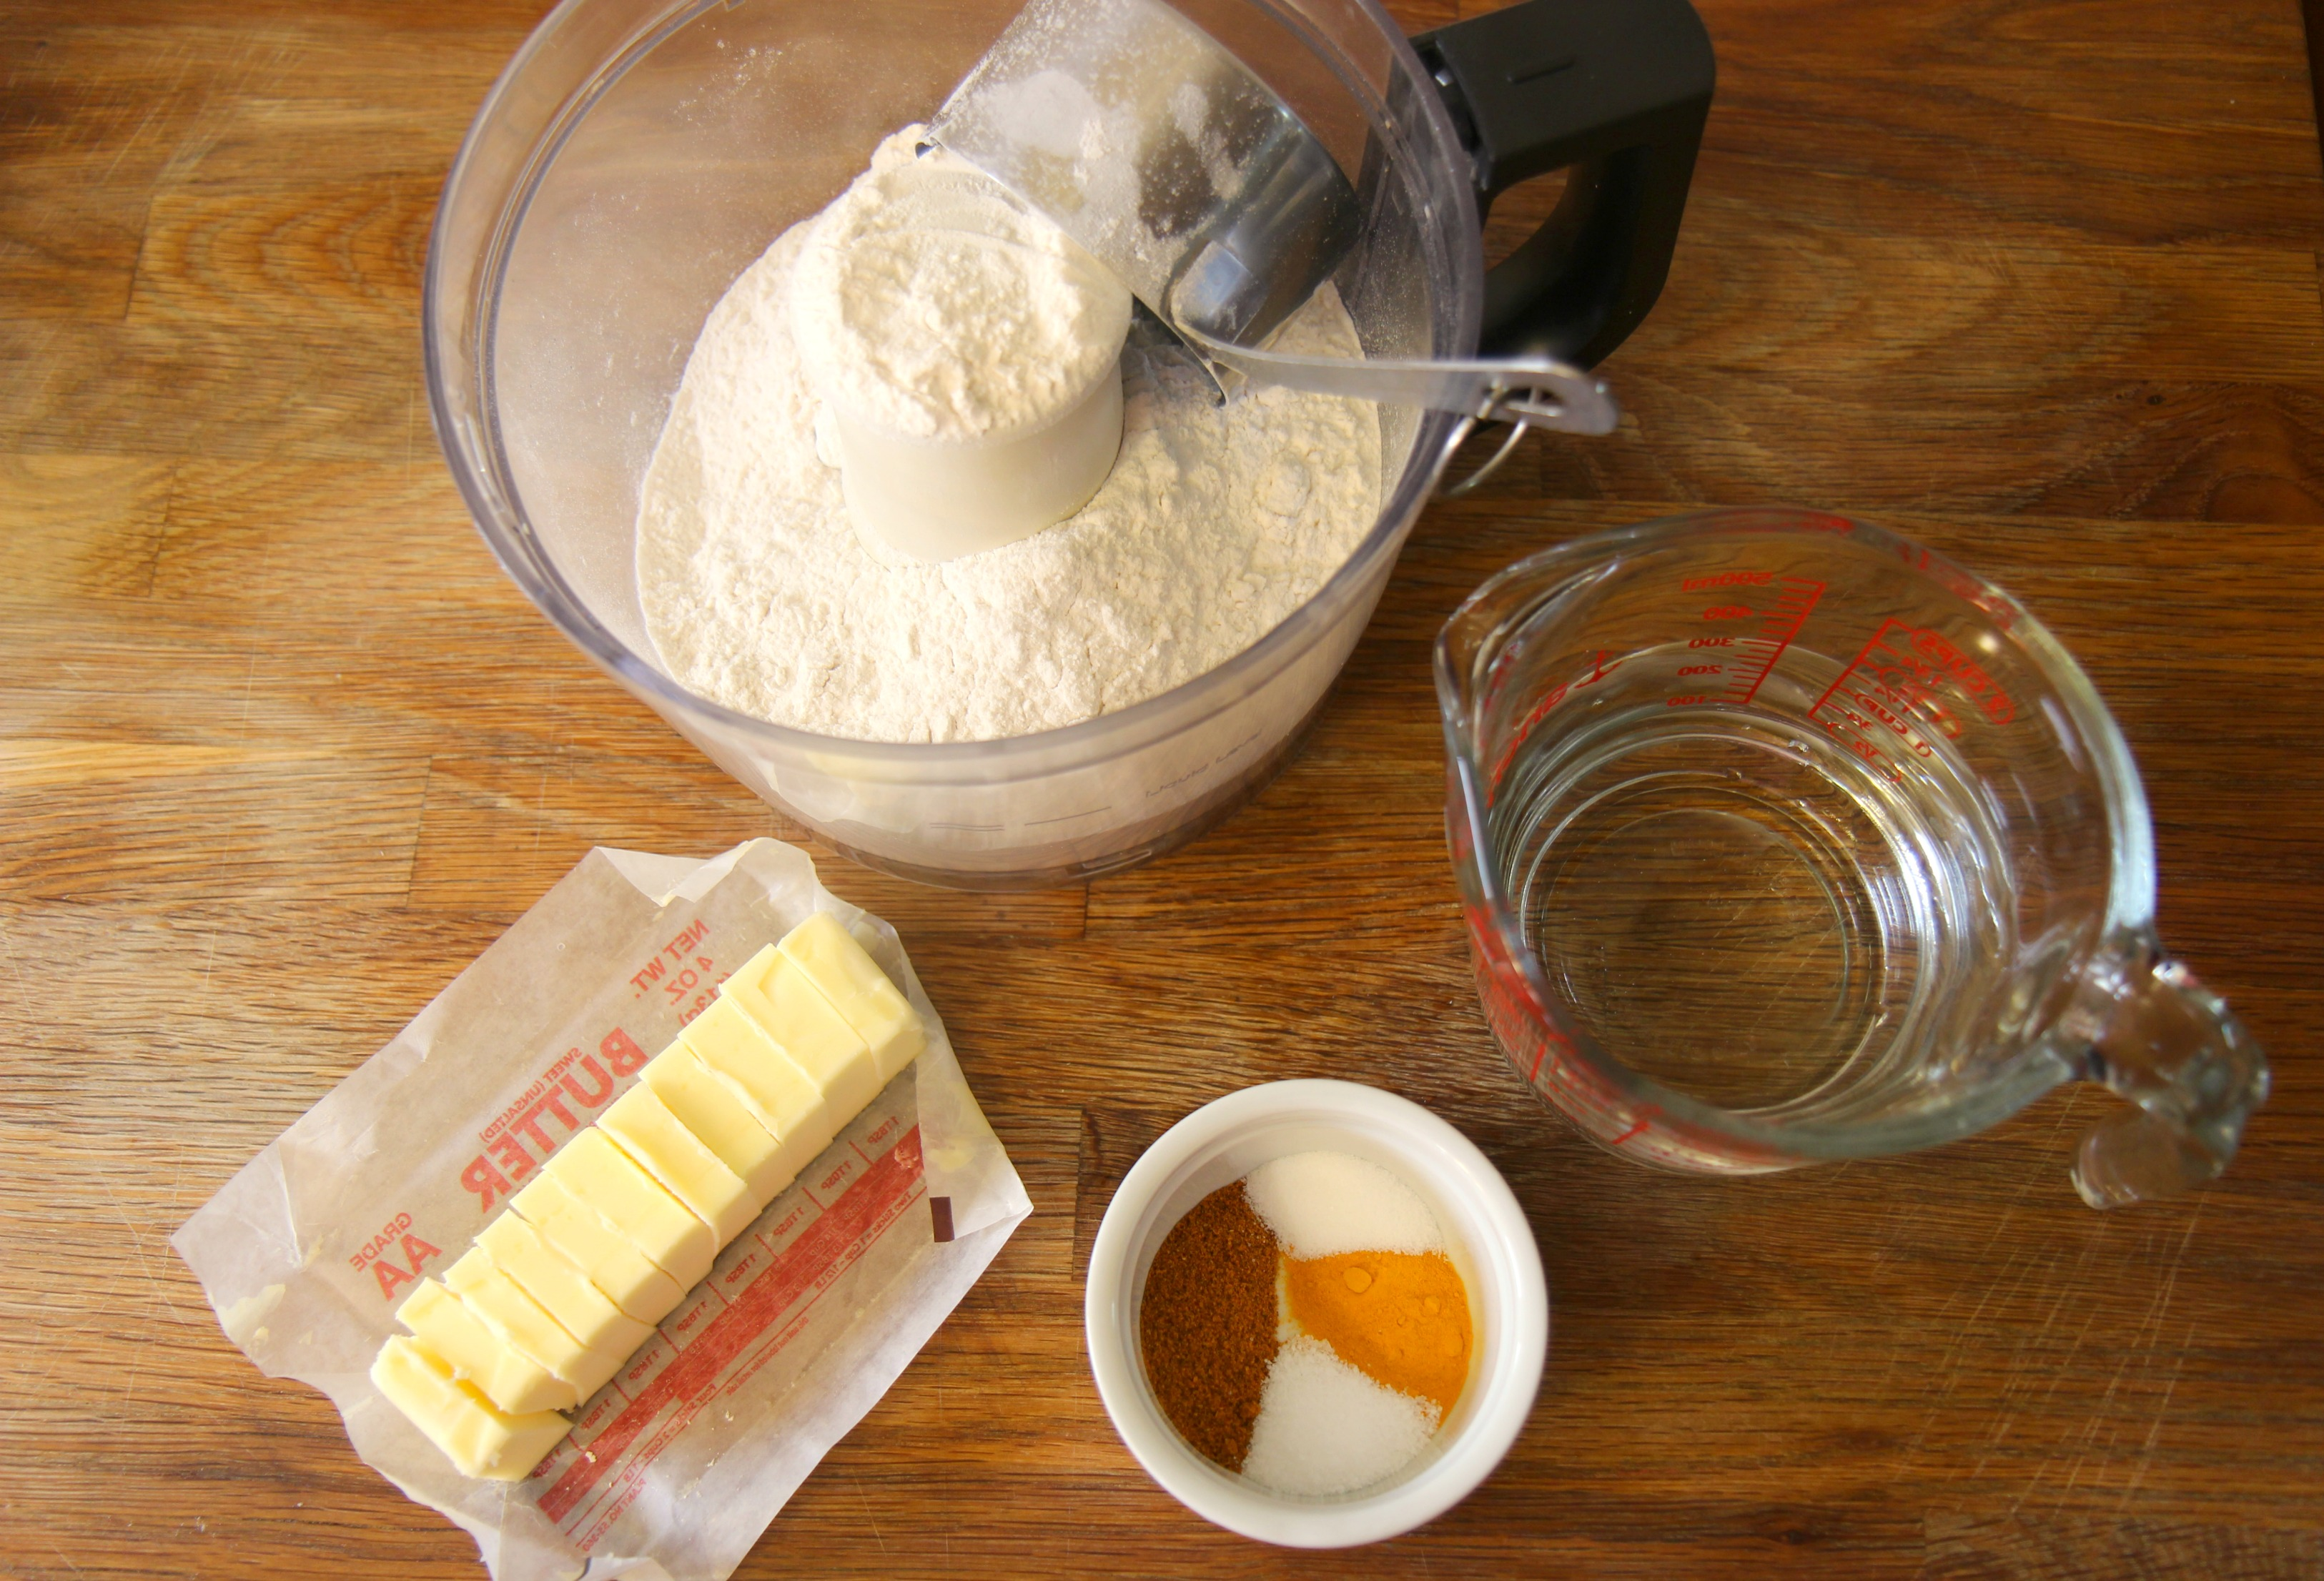 The Basic ingredients to make a flavorful dough.